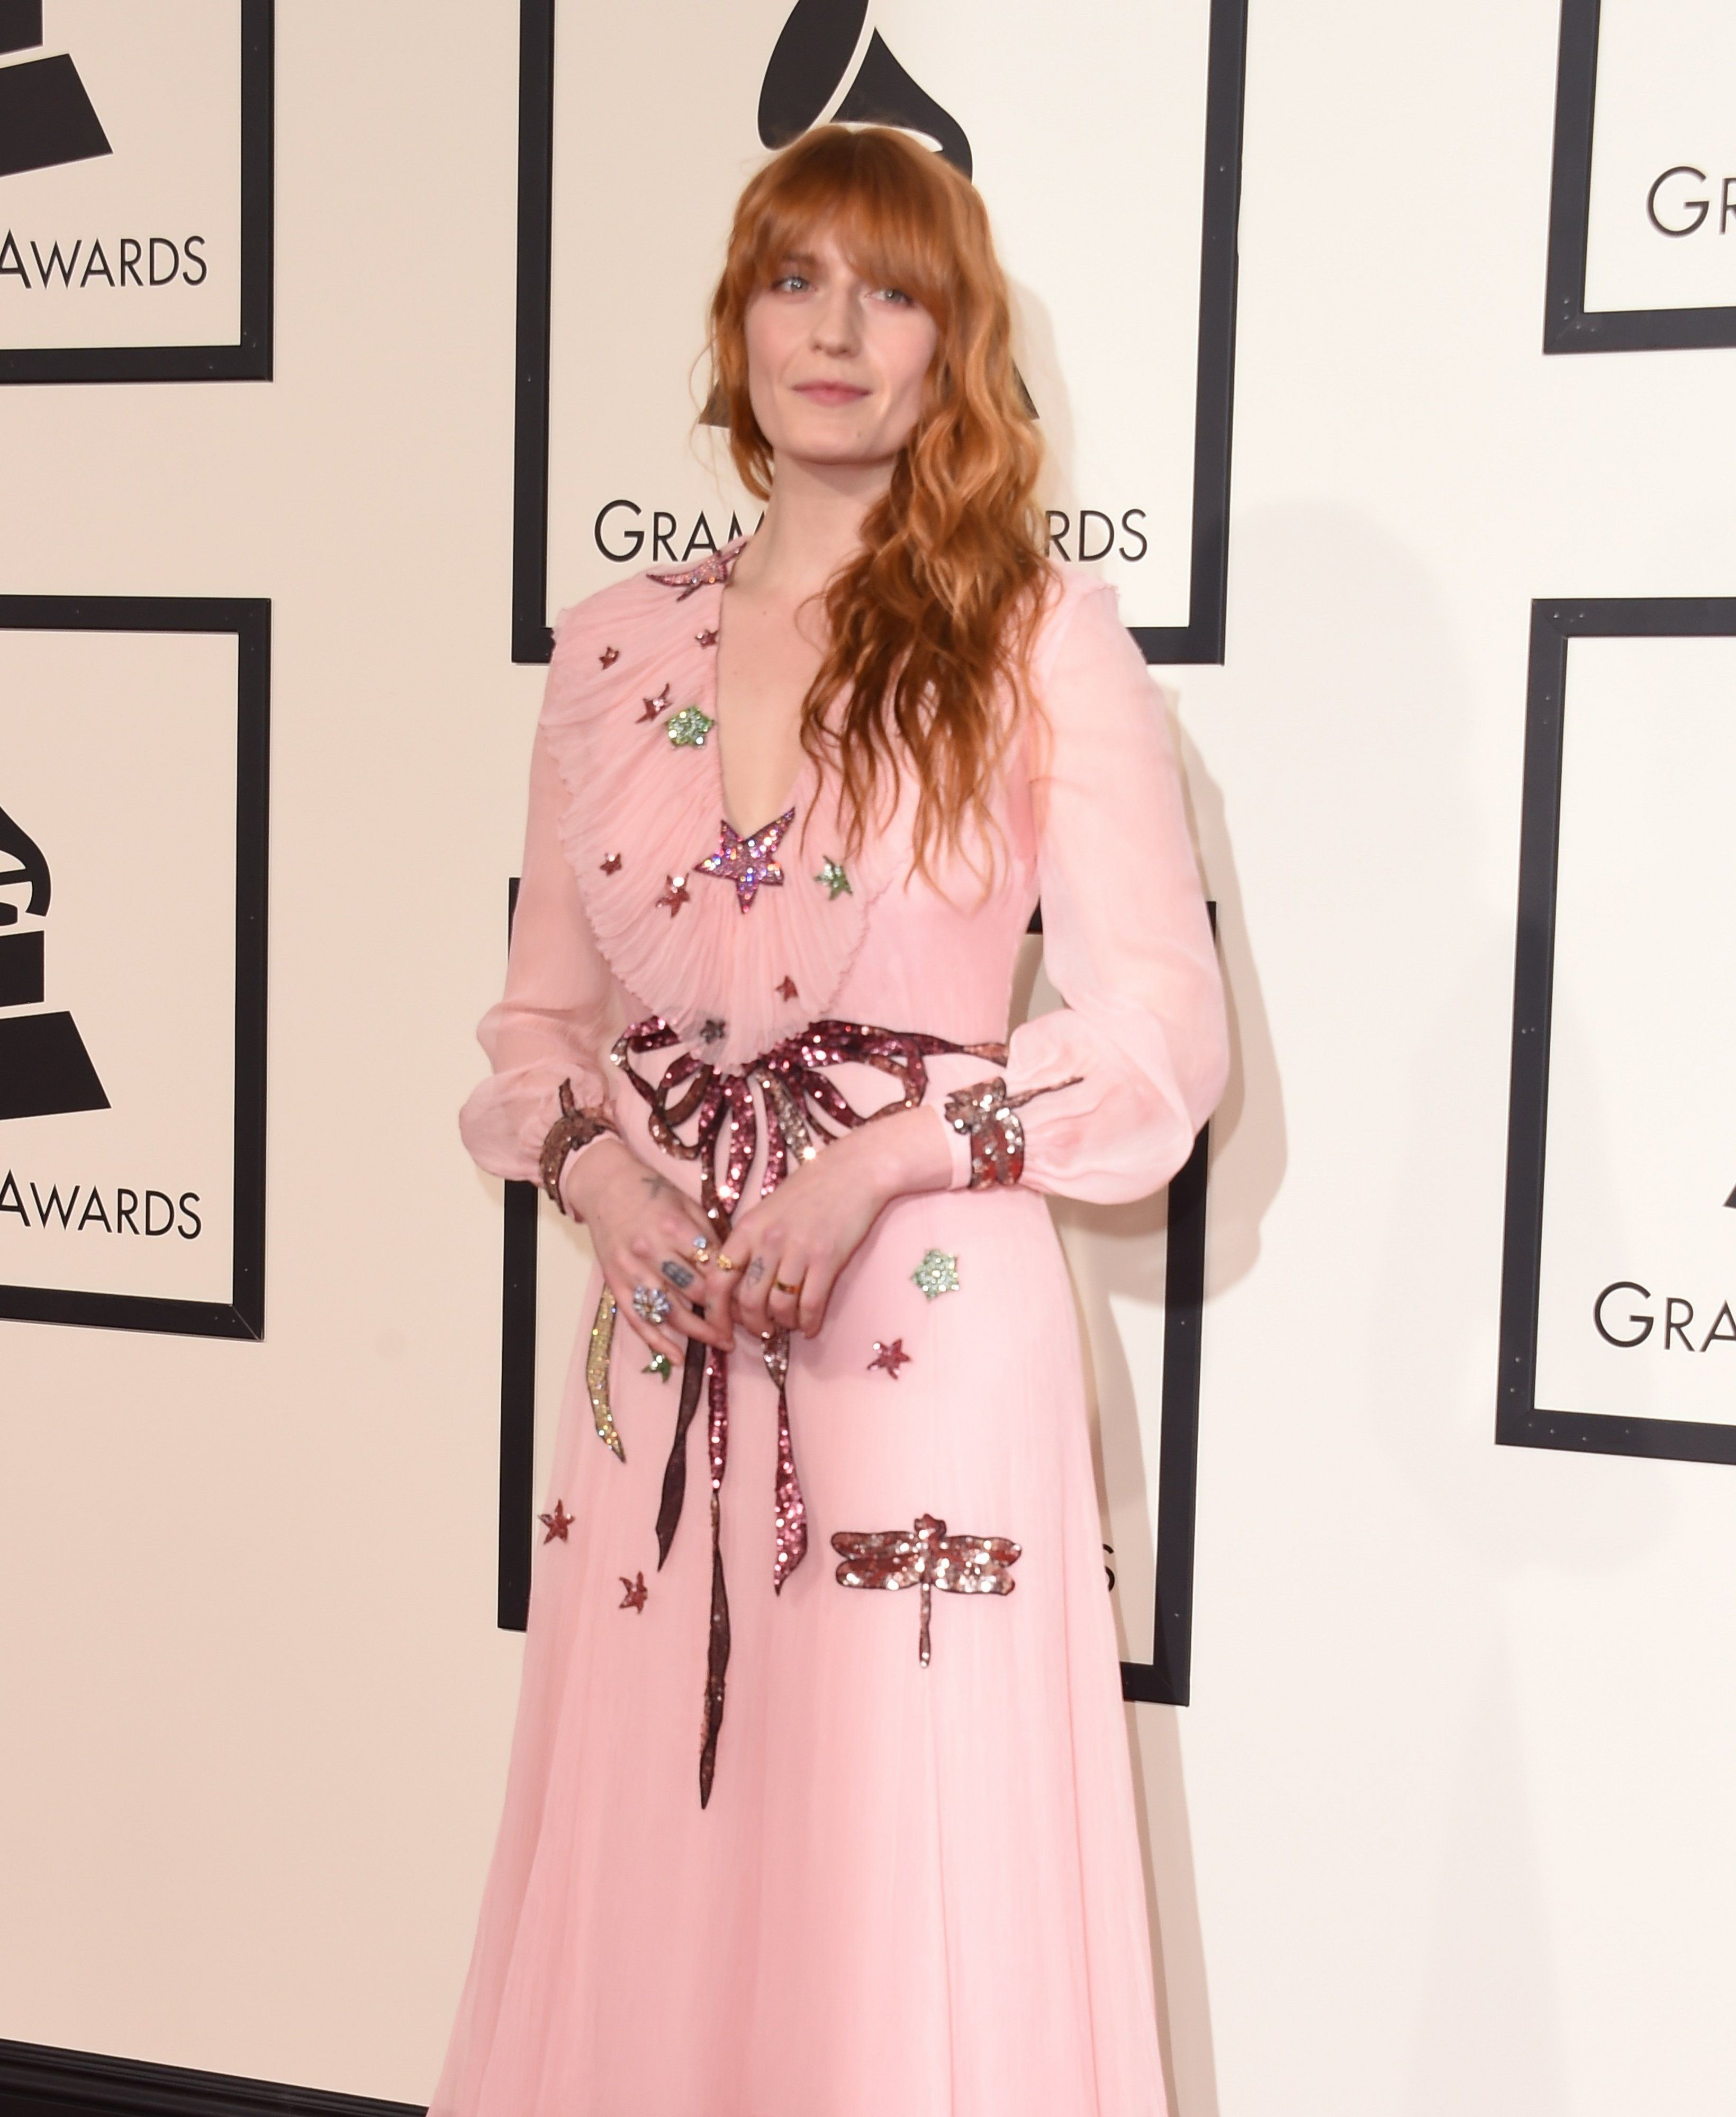 Grammys 2016: Fashion—Live From the Red Carpet